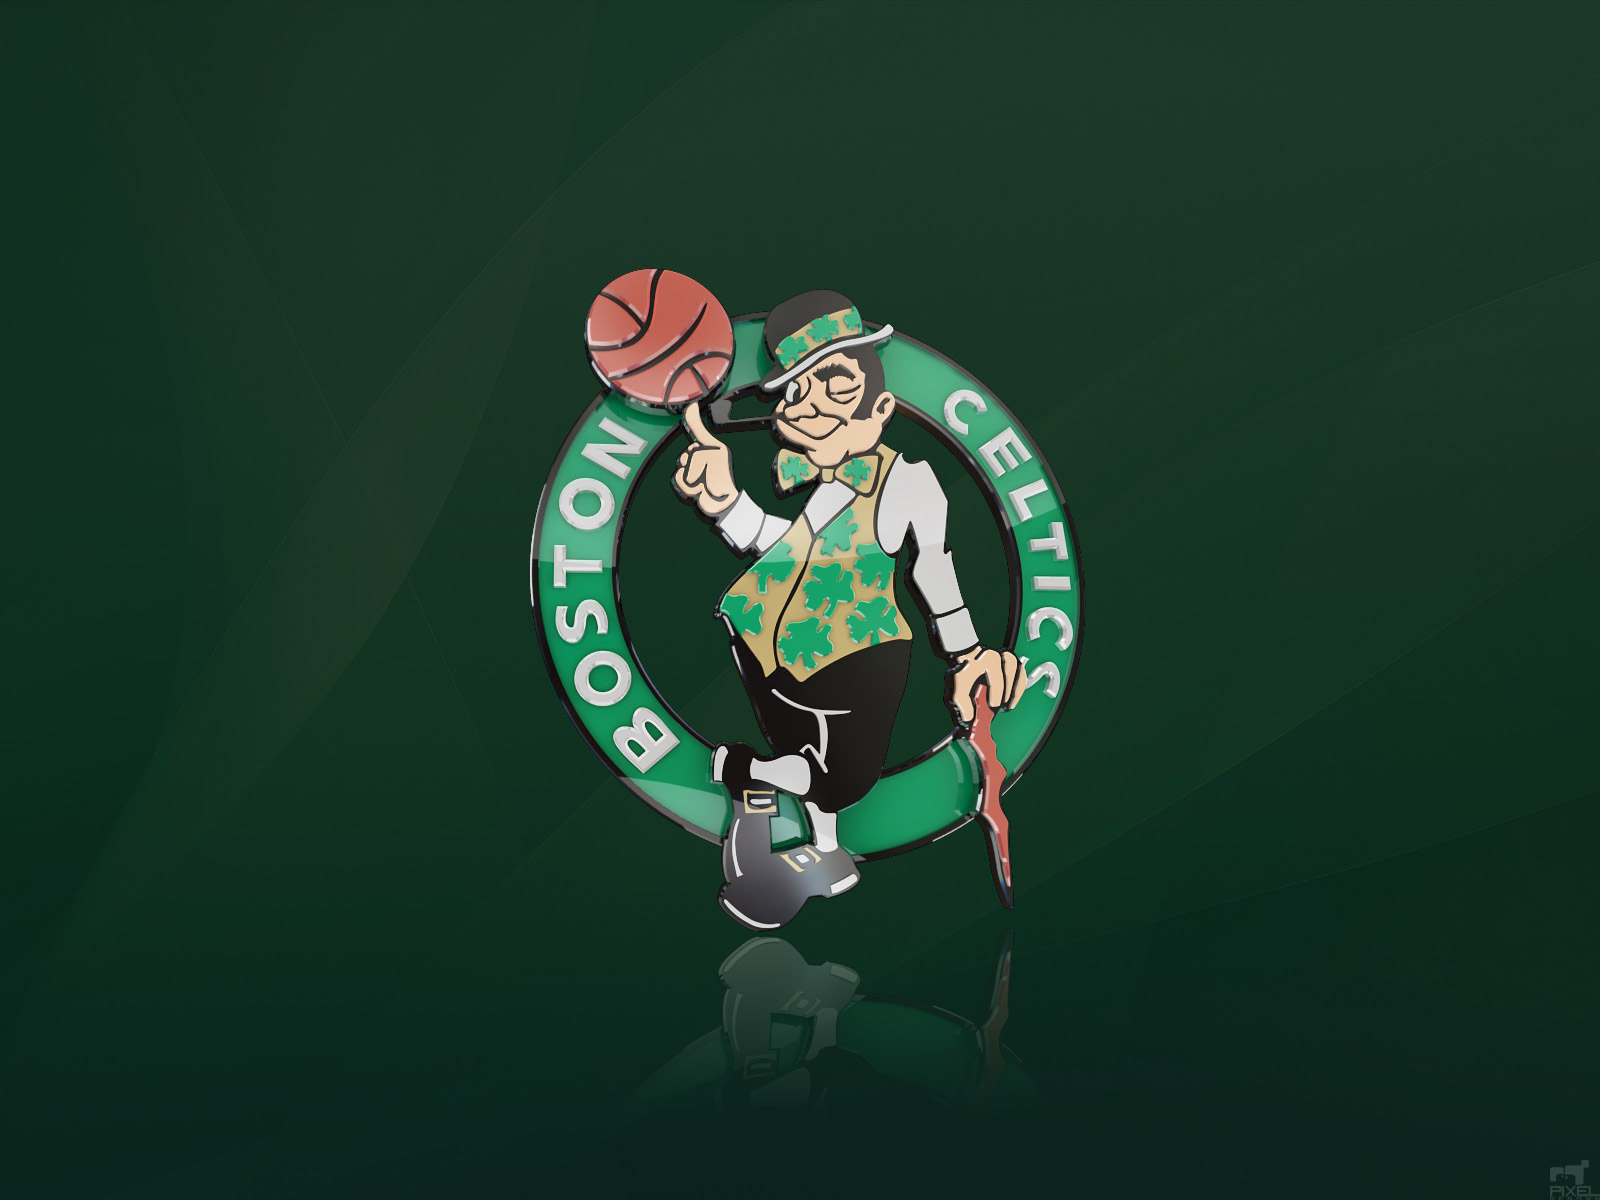 Boston CELTICS - Basketball Wallpapers